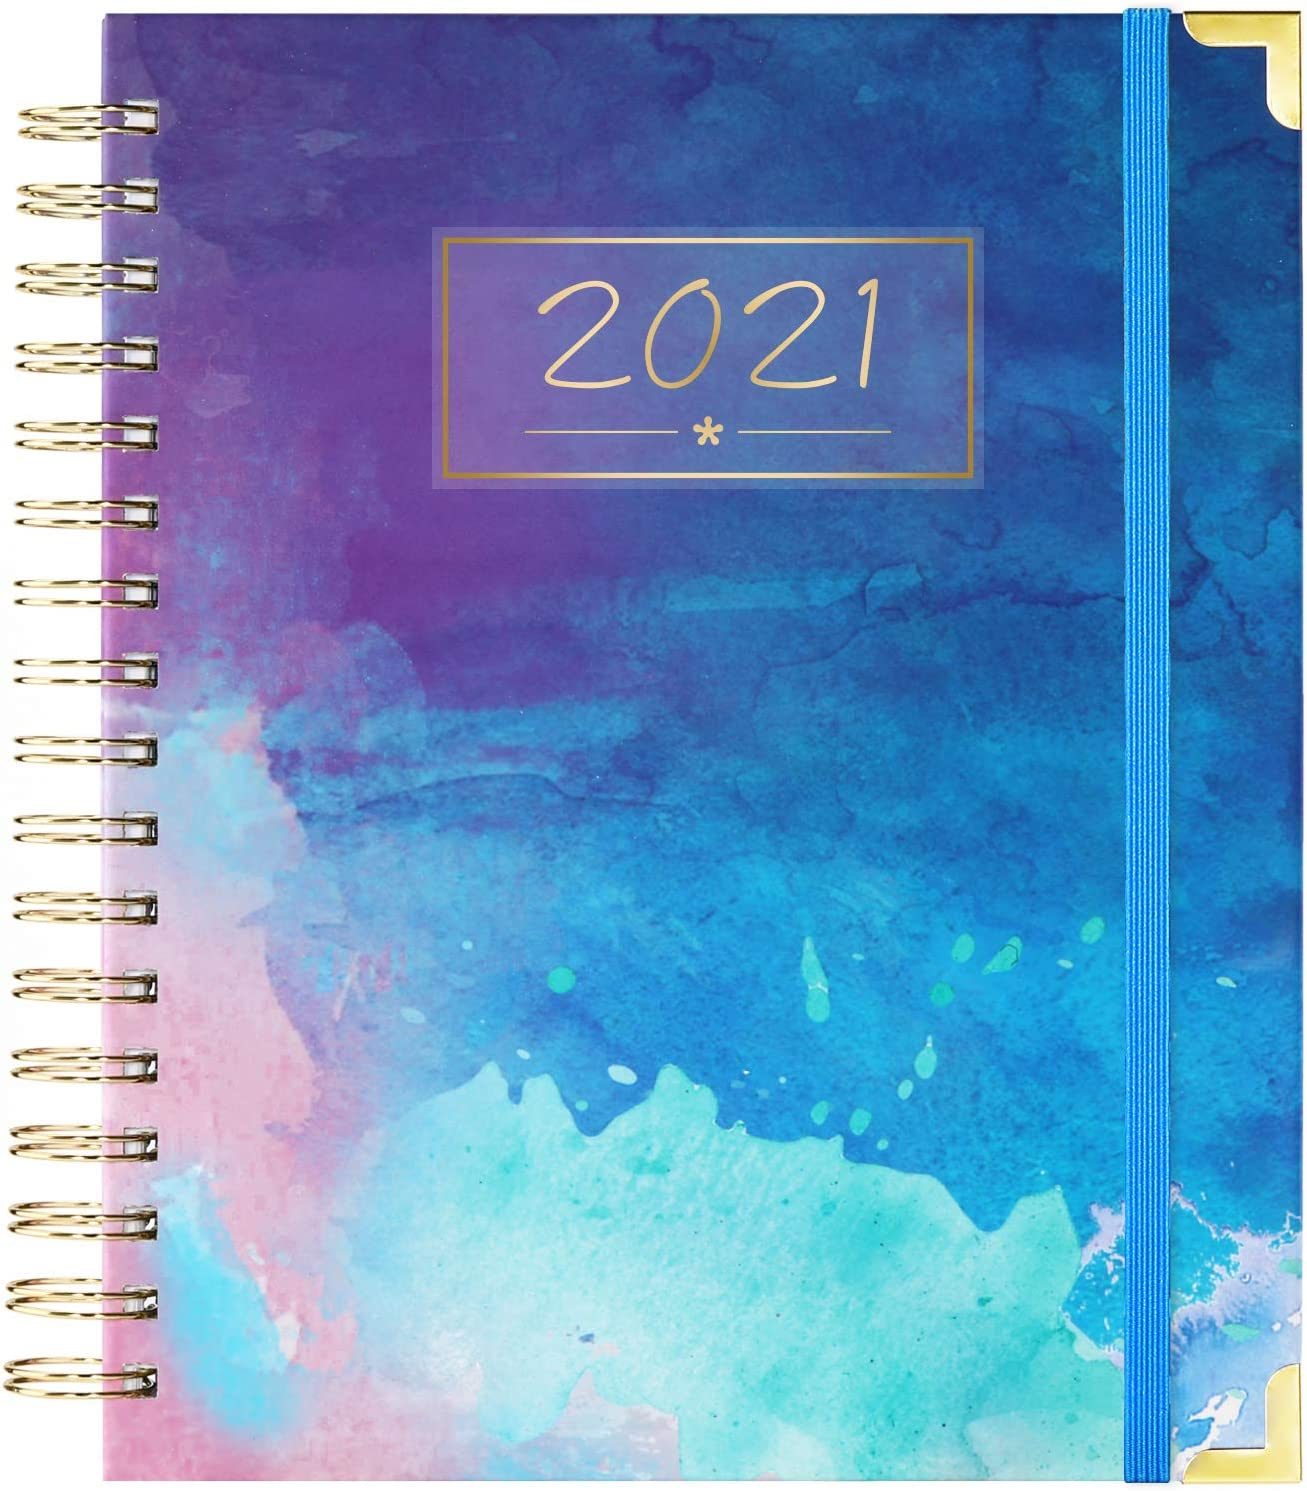 "2021 Planner - Weekly & Monthly Planner 2021, January 2021 - December 2021, Thick Paper with Colorful Tabs - 9.3"" x 8.25"", Twin-Wire Binding with 15 Notes Pages + Two-Sided Inner Pocket + Ruler"